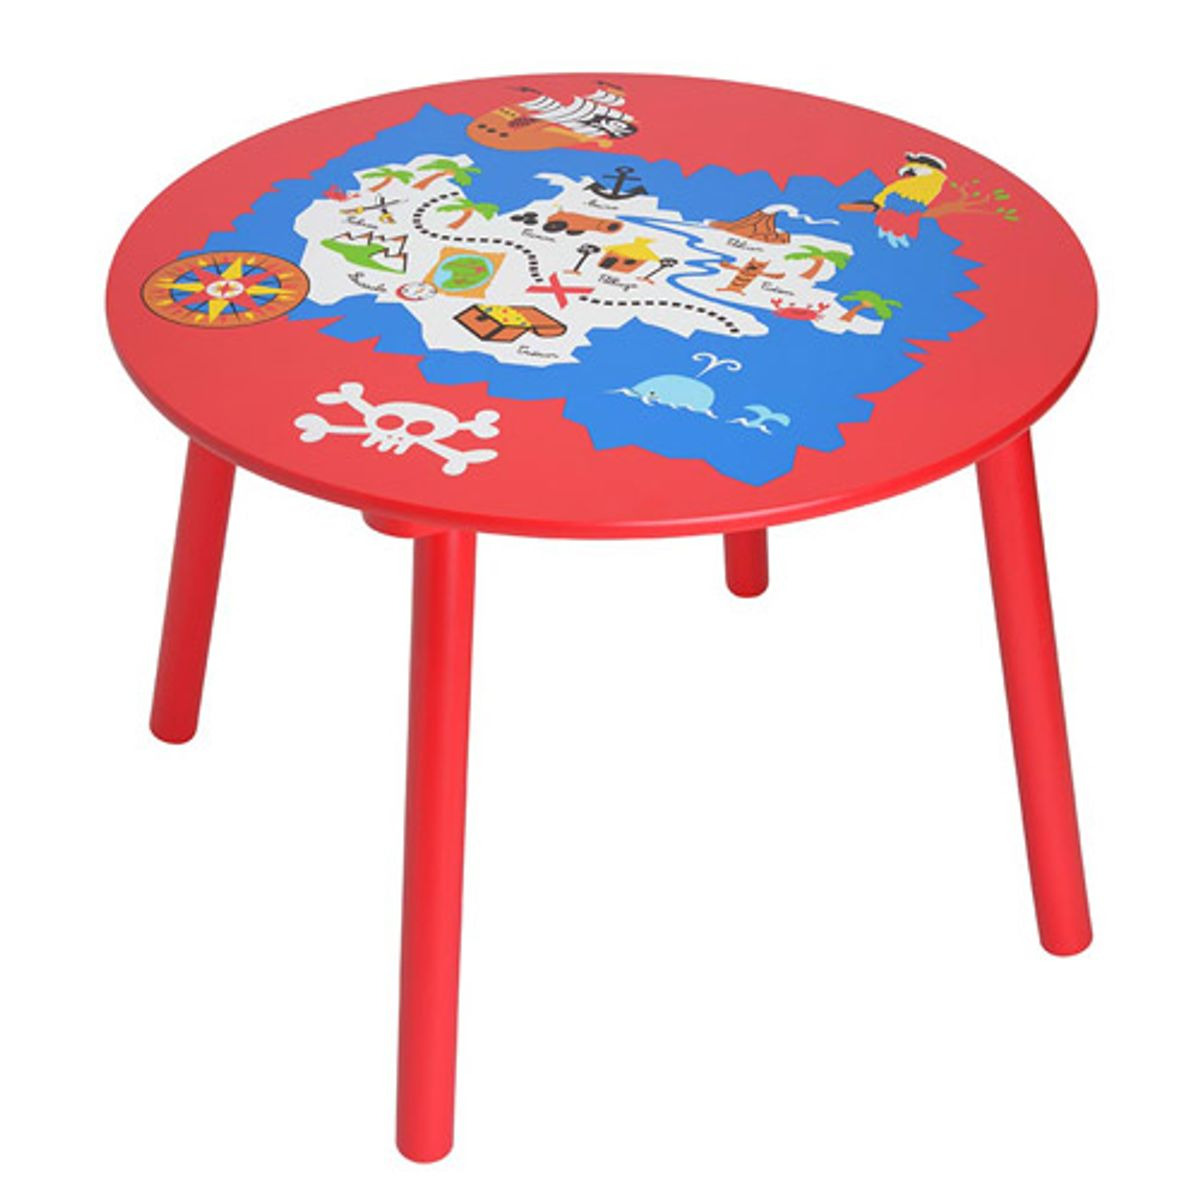 Table ronde en bois peint enfant pirates la chaise longue for Chaise pour table ronde